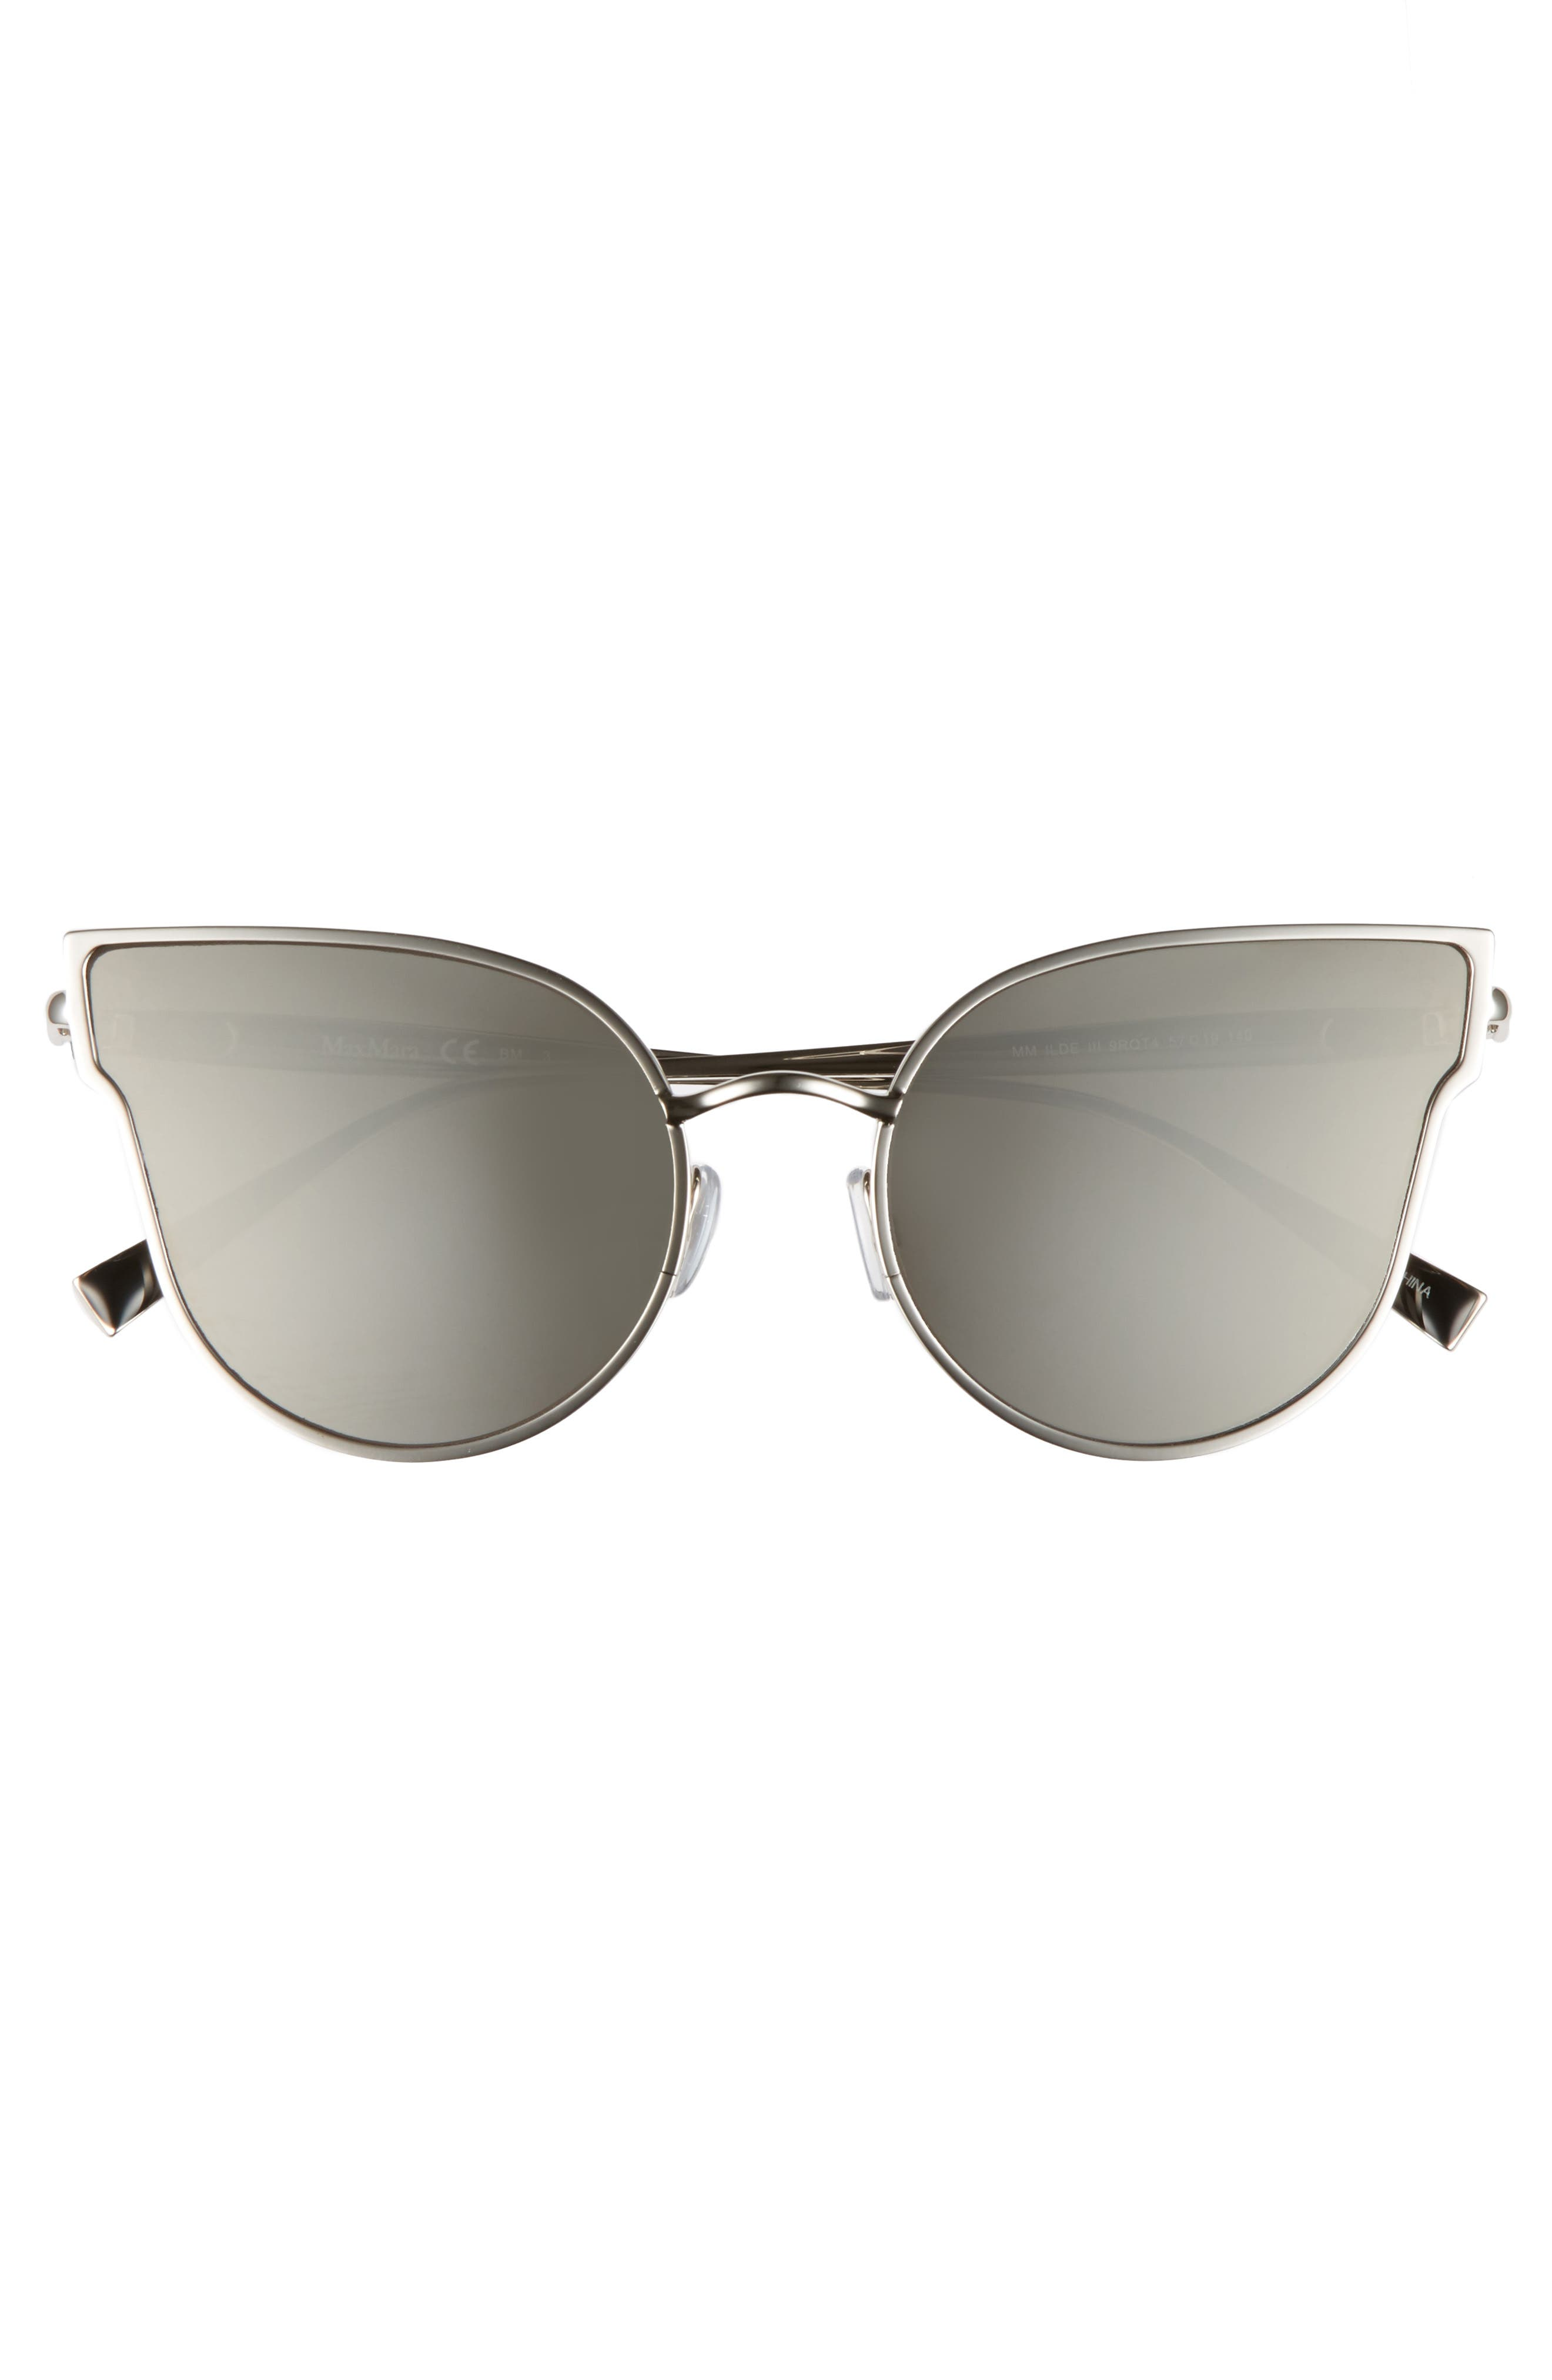 Ilde III 57mm Mirrored Cat Eye Sunglasses,                             Alternate thumbnail 3, color,                             Smoke Silver